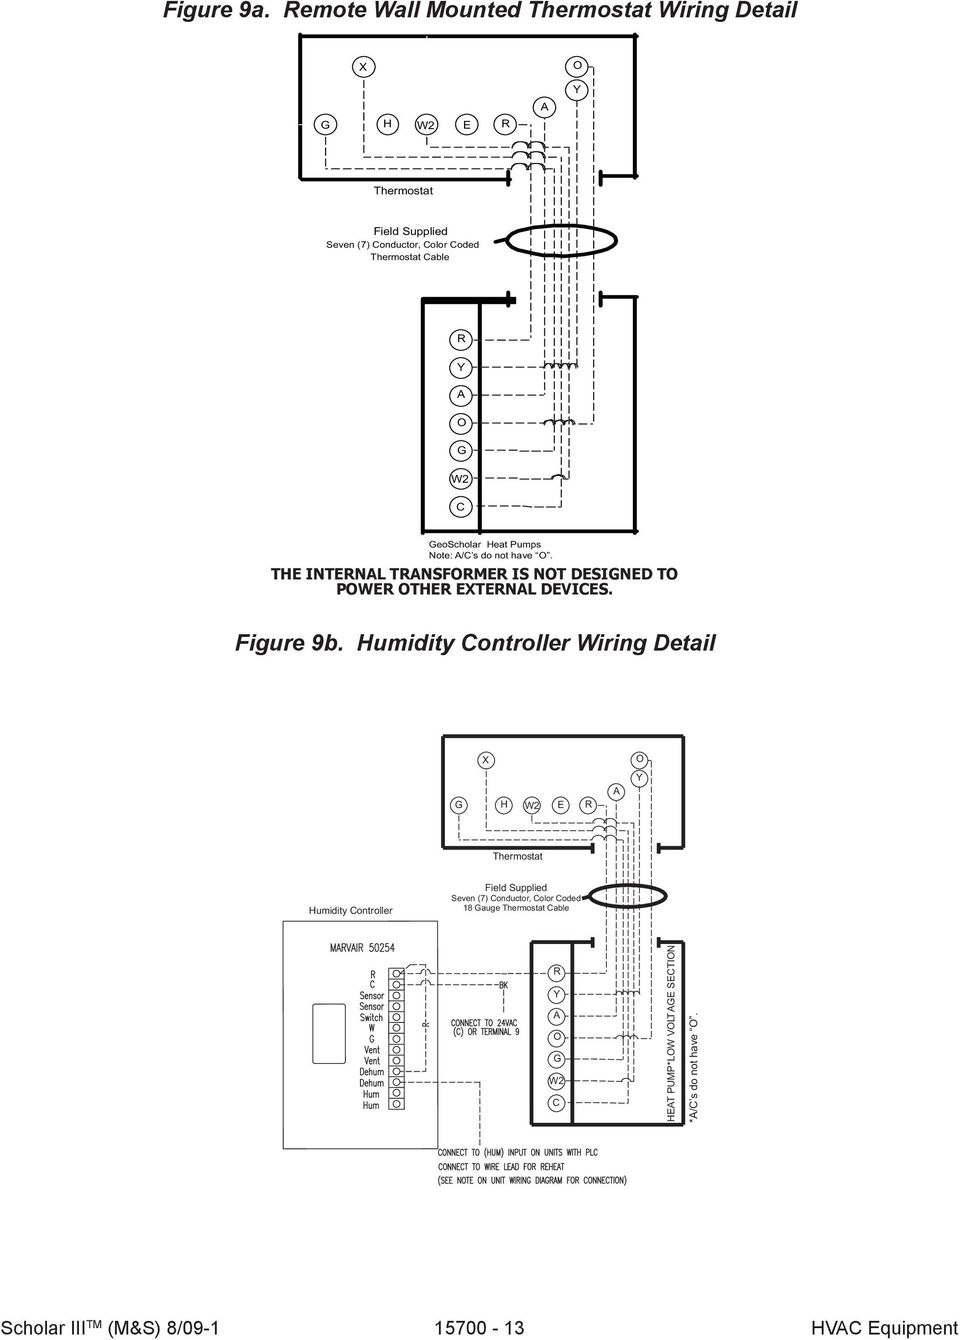 Scholar Iii Heat Pumps Air Conditioners Pdf Humidity Control Wiring Diagram A O G W2 C Geoscholar Note S Do Not Have